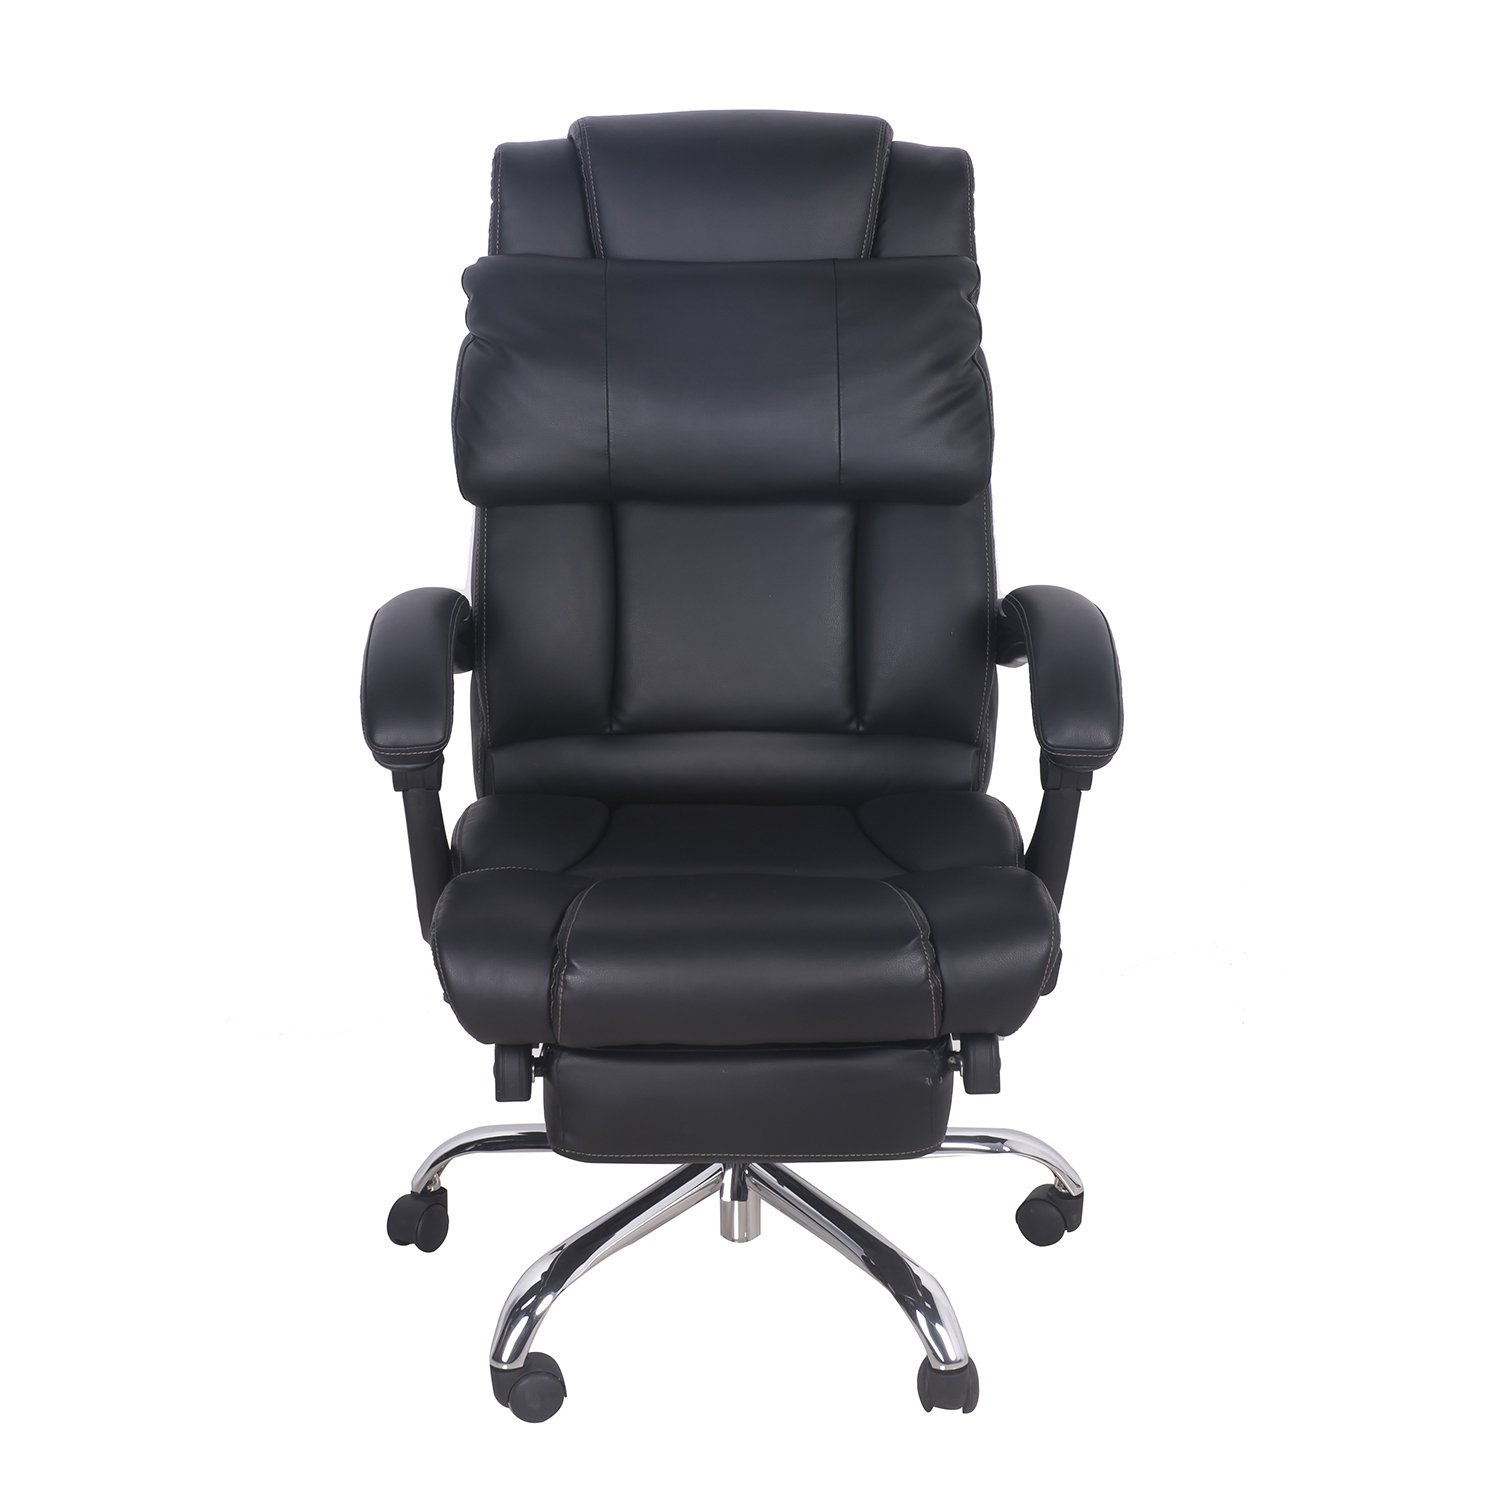 office recliners. Merax Technical Leather Big Tall Executive Recliner Napping - Black Office Recliners O